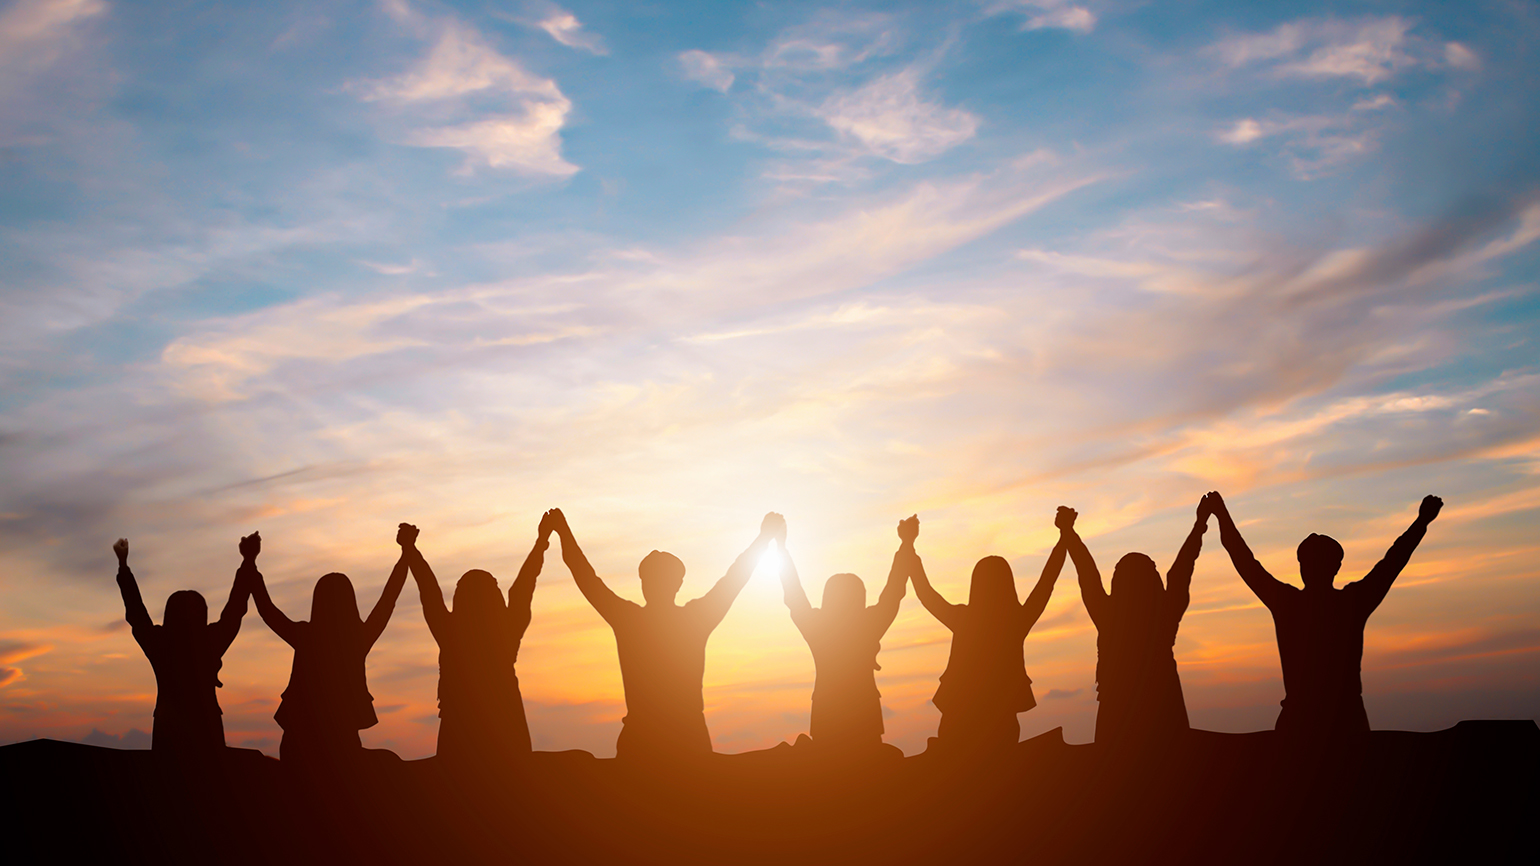 A group of friends raise their arms in gratitude and praise